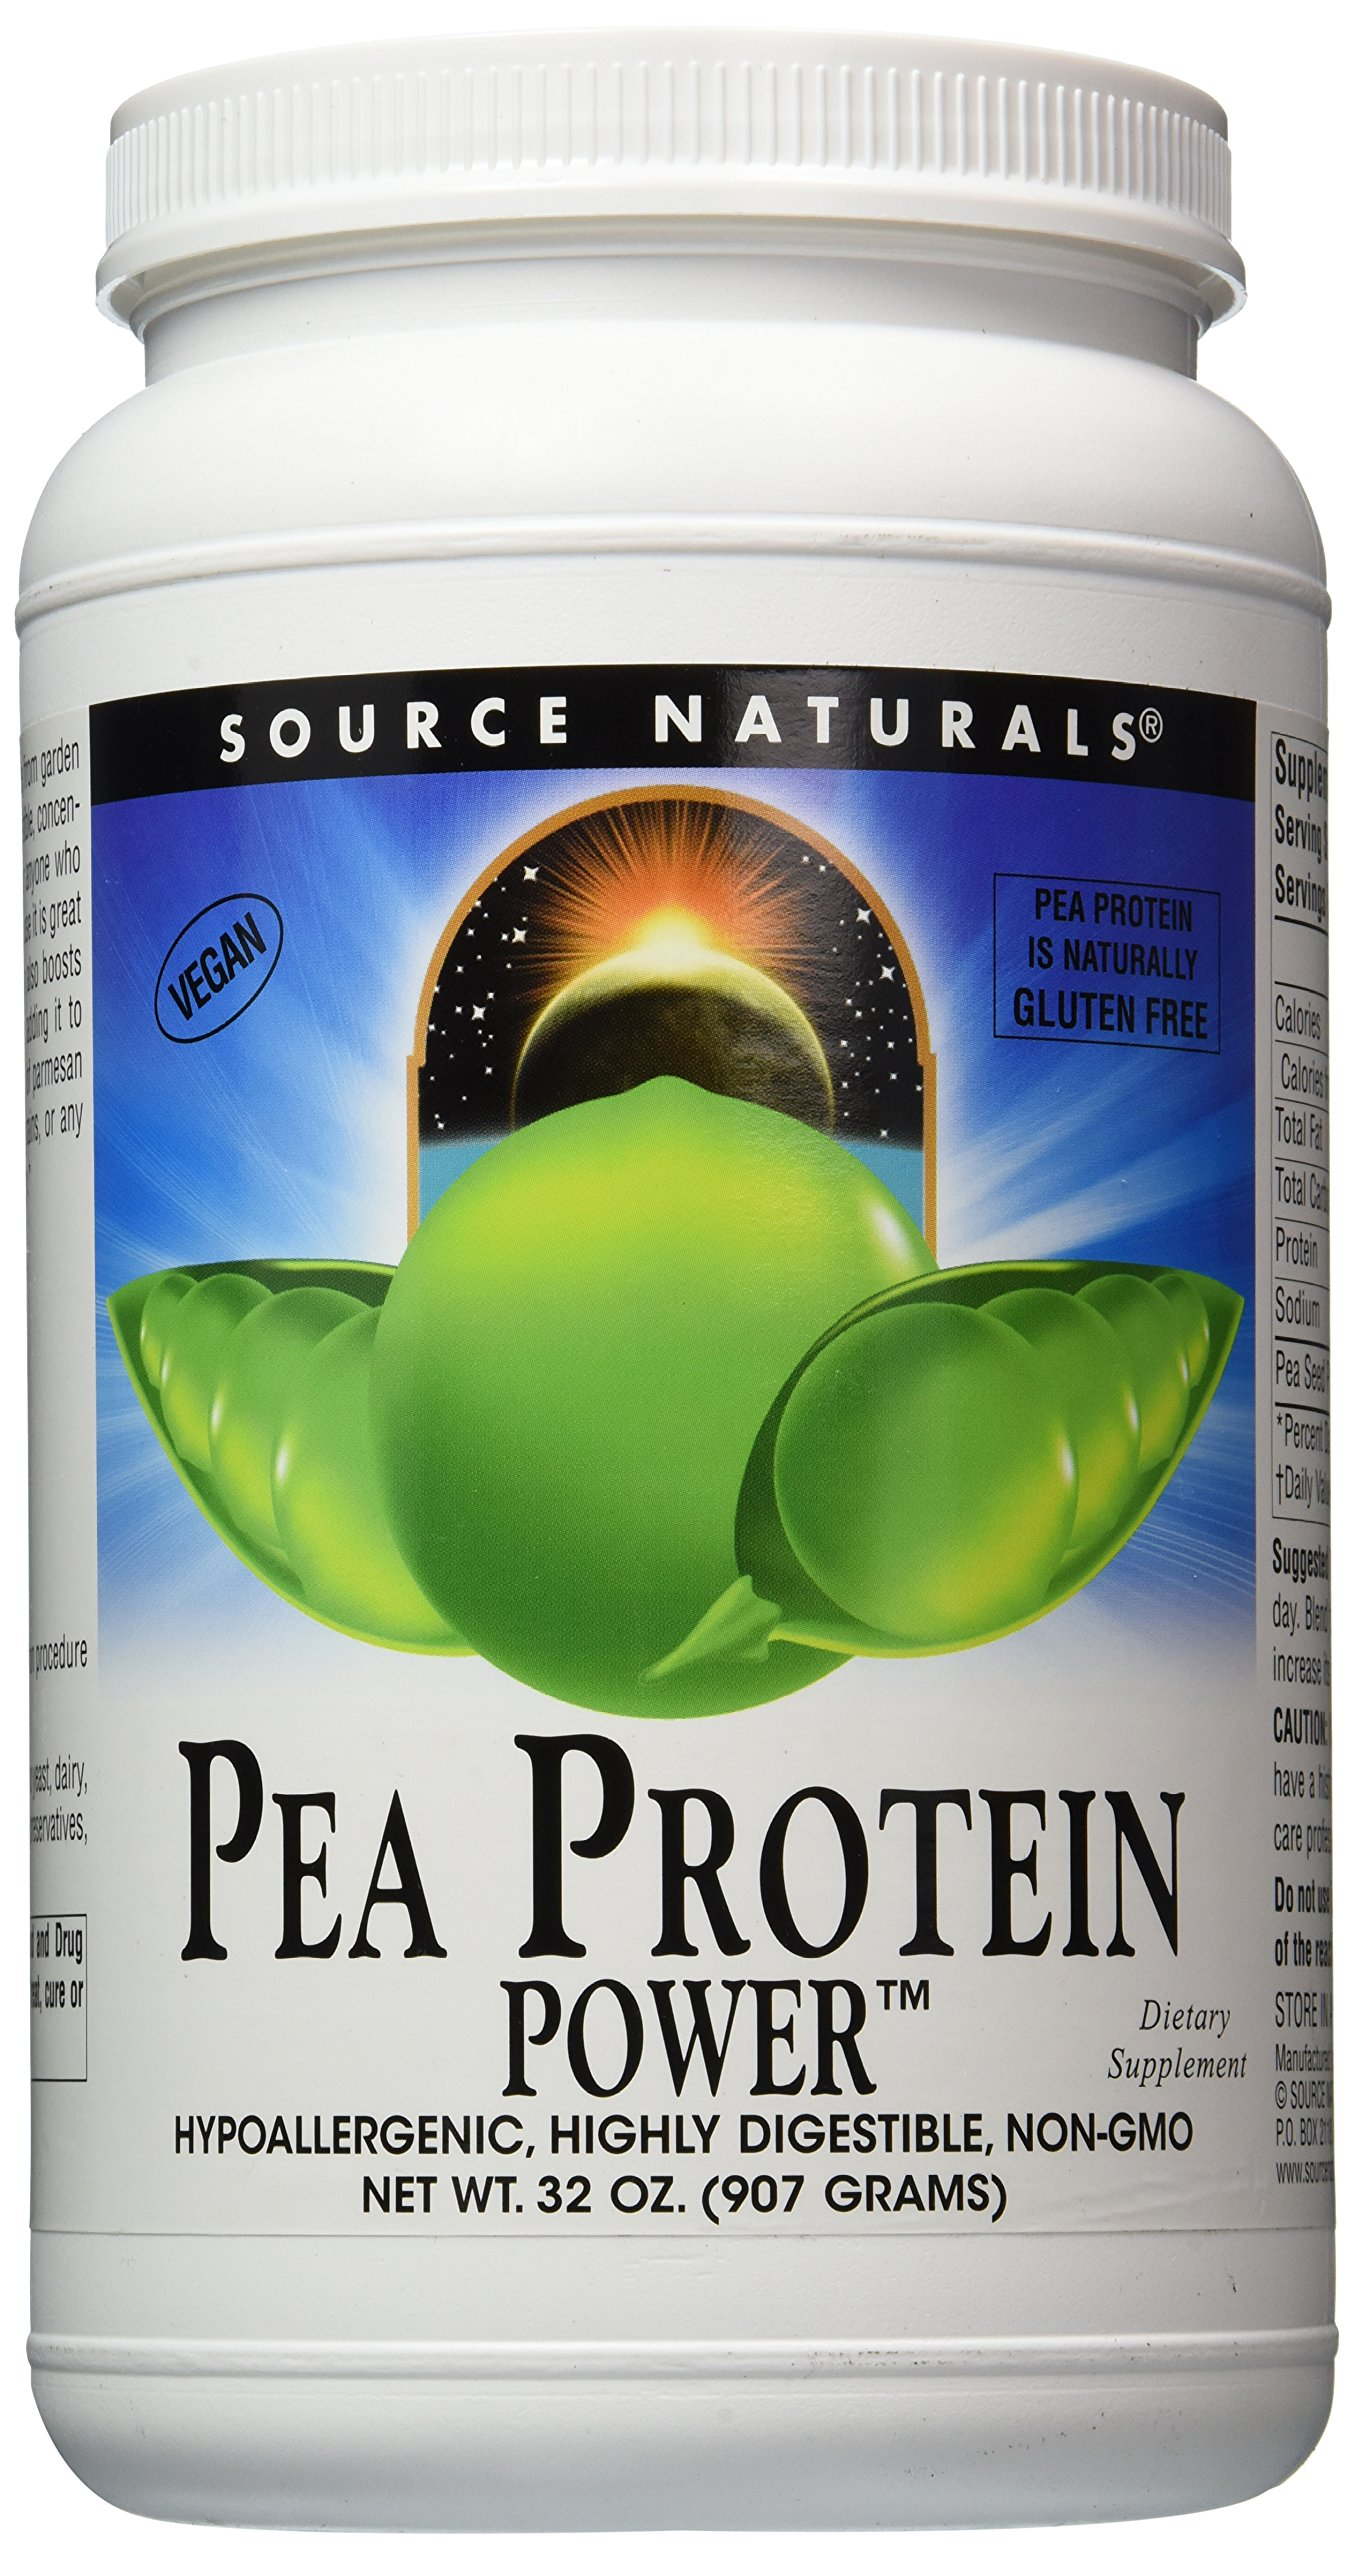 Source Naturals Pea Protein Power, Hypoallergenic, Highly Digestible, Non-GMO